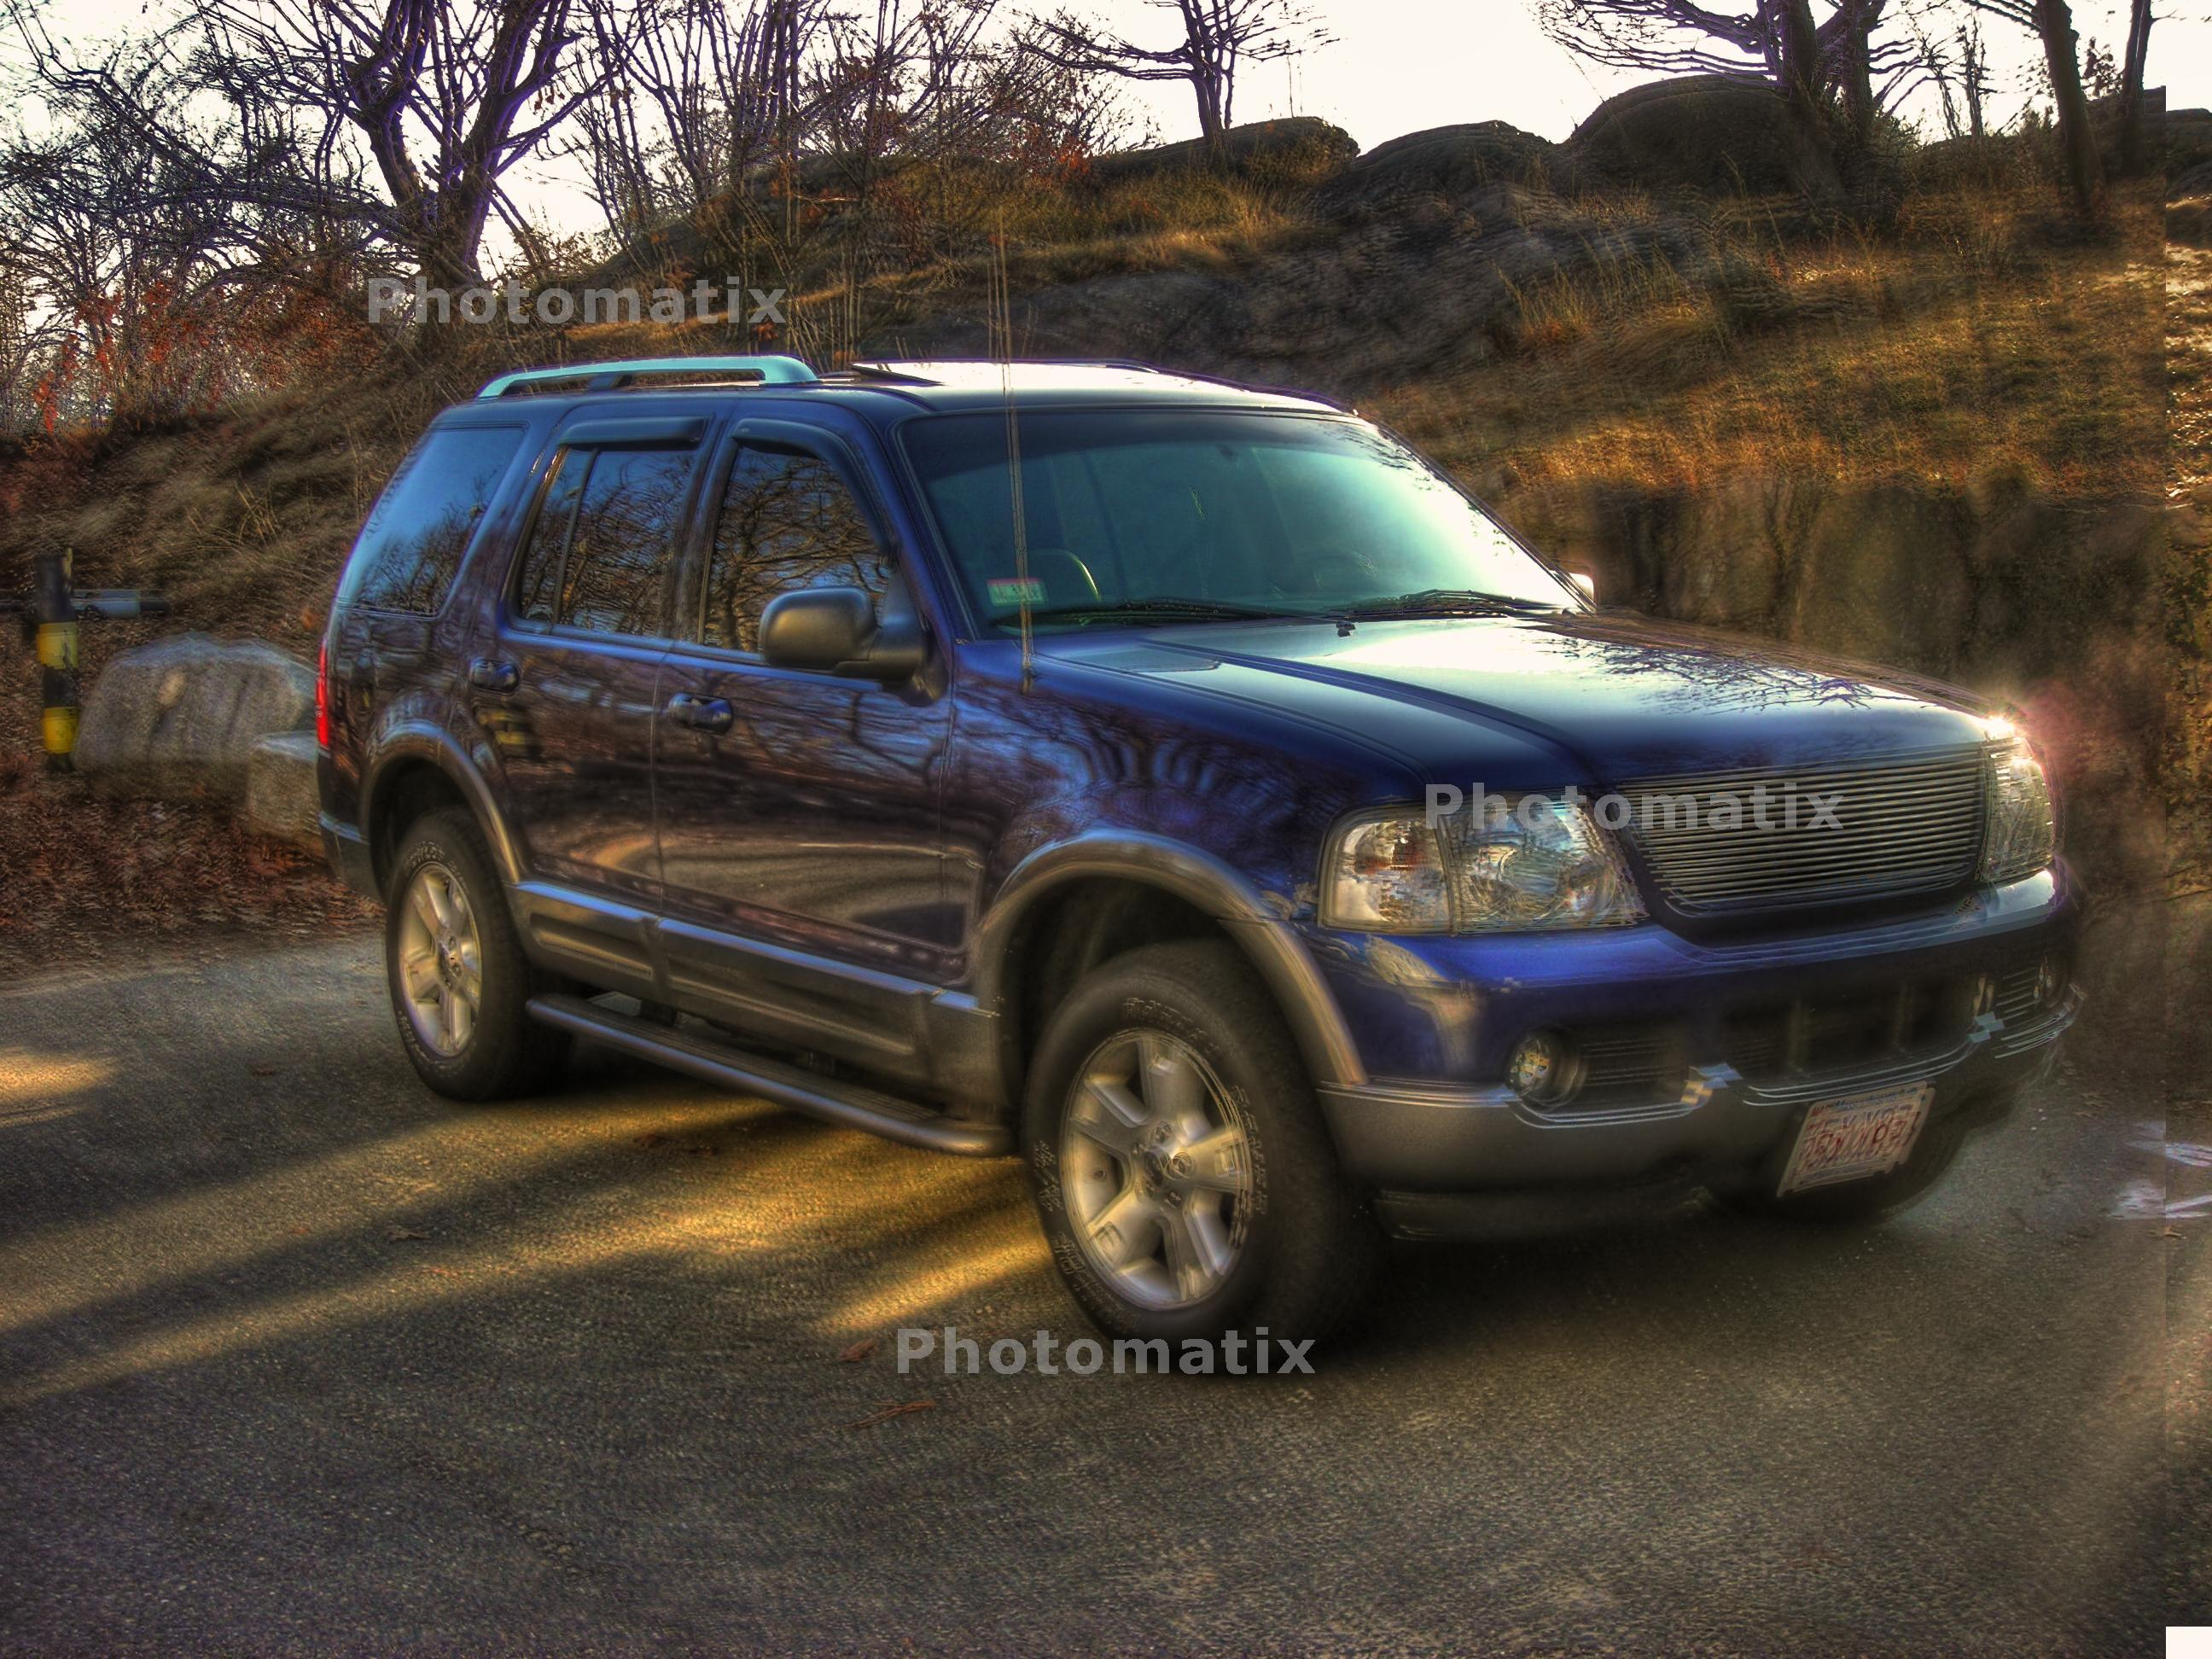 Janks's 2004 Ford Explorer in Weymouth, MA